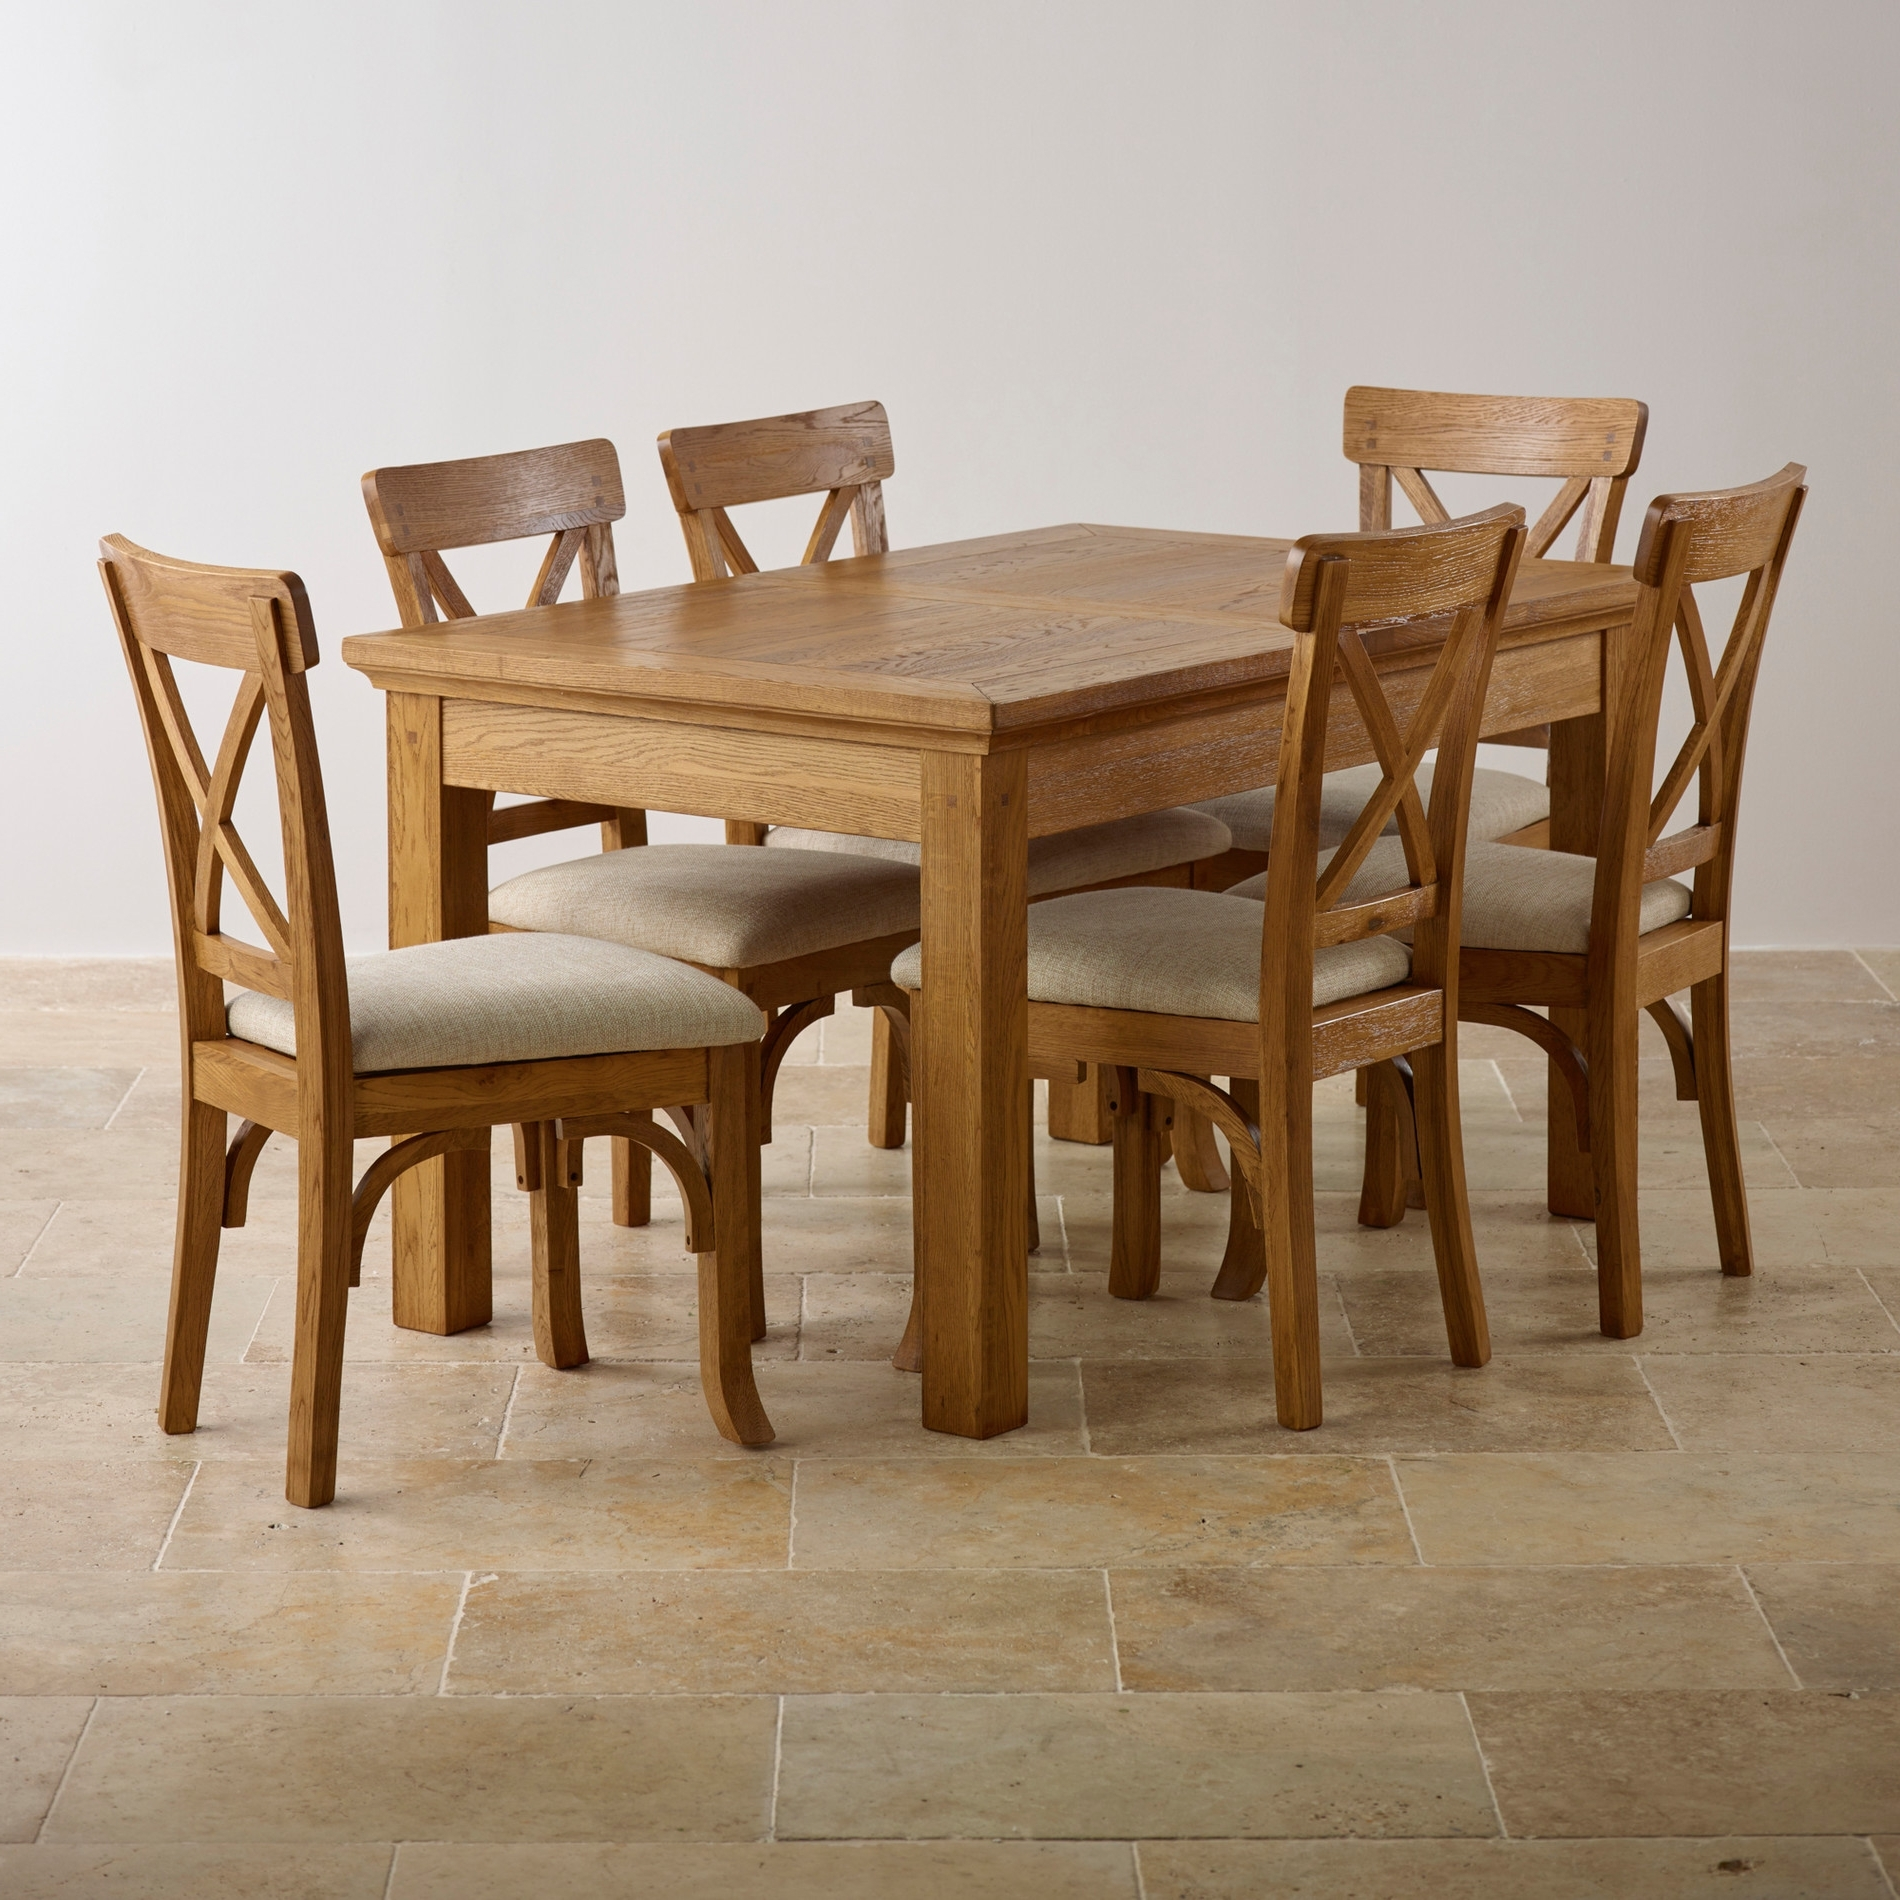 Most Popular How To Get The Oak Dining Sets? – Pickndecor Intended For Cheap Oak Dining Tables (View 1 of 25)